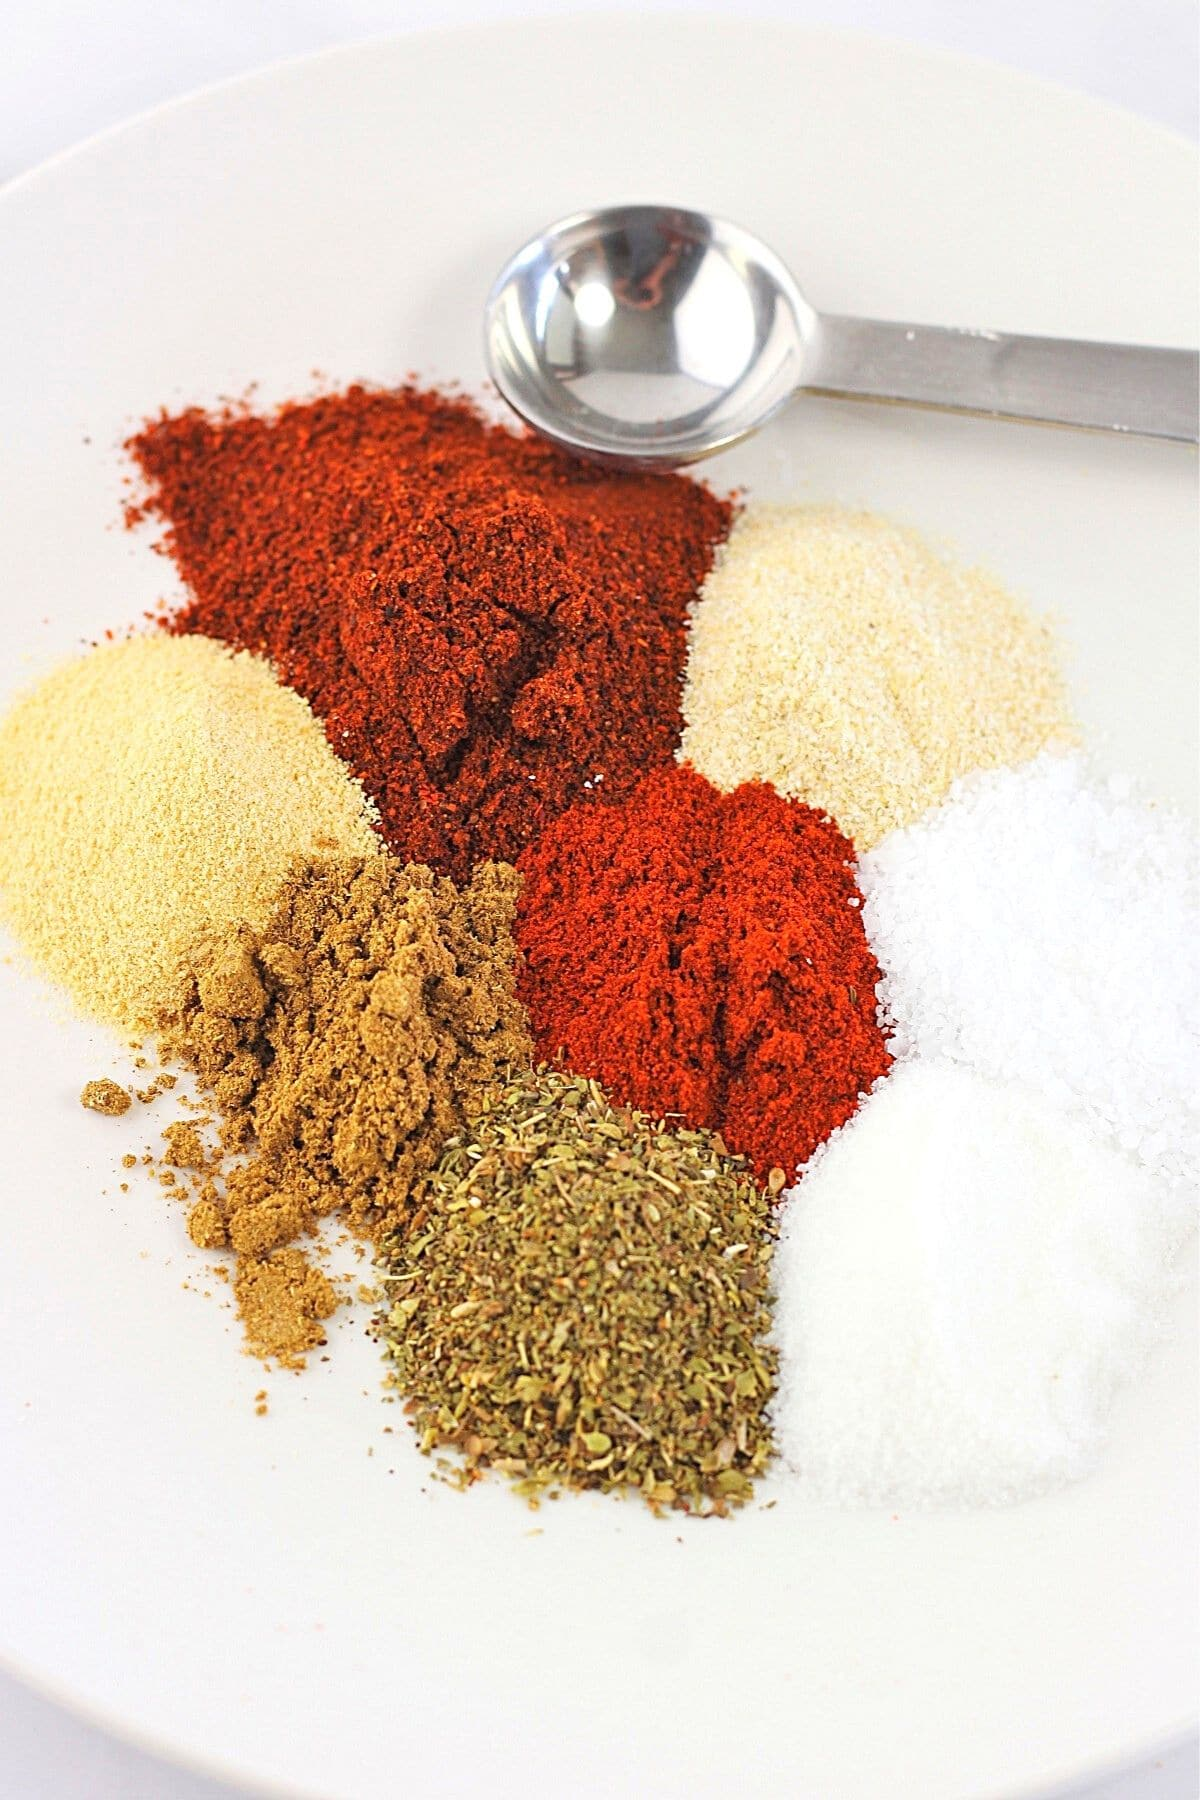 herbs and spices on a plate with a measuring spoon